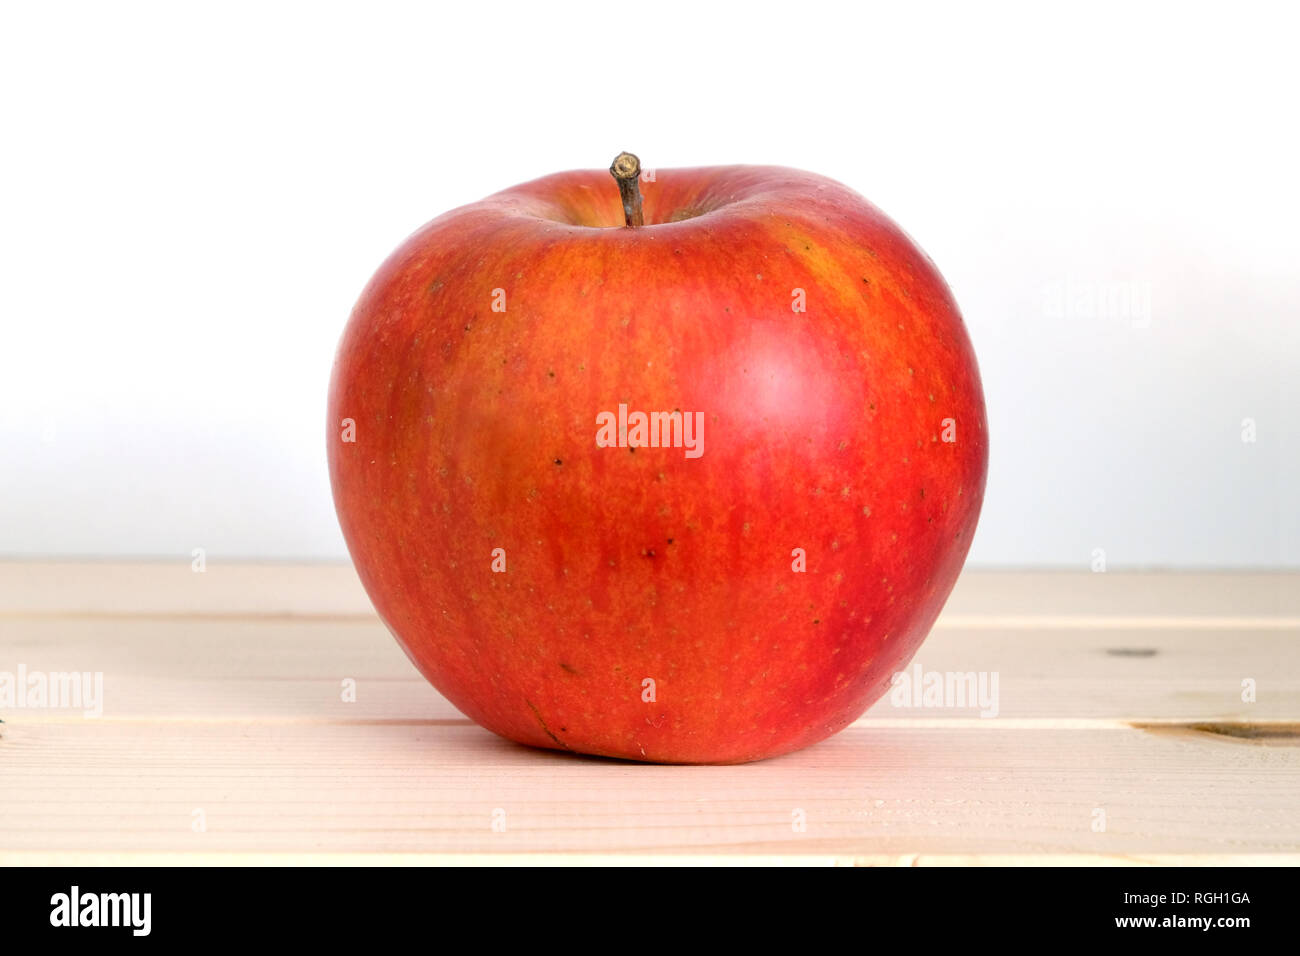 Big ripe red apple in beige wooden shelf on white background front view closeup - Stock Image